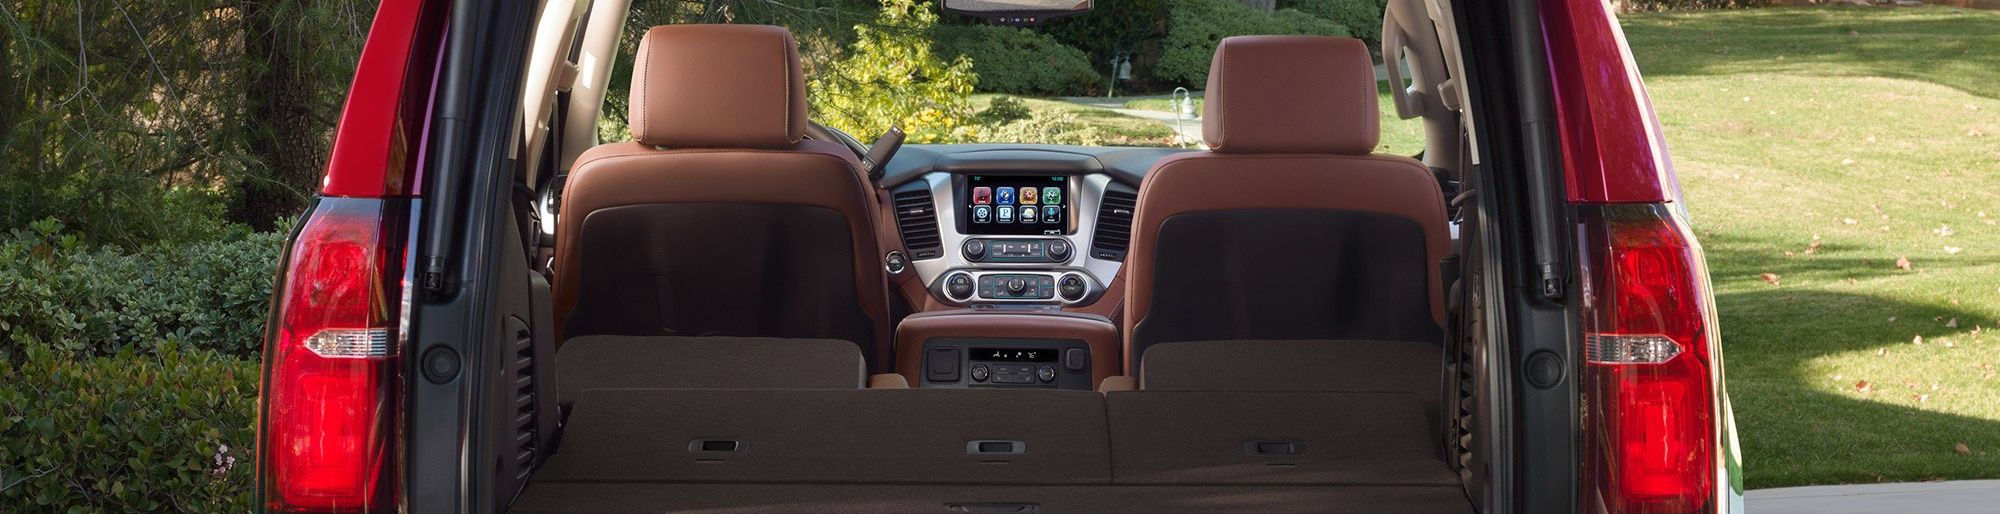 2019 Tahoe Trunk Space